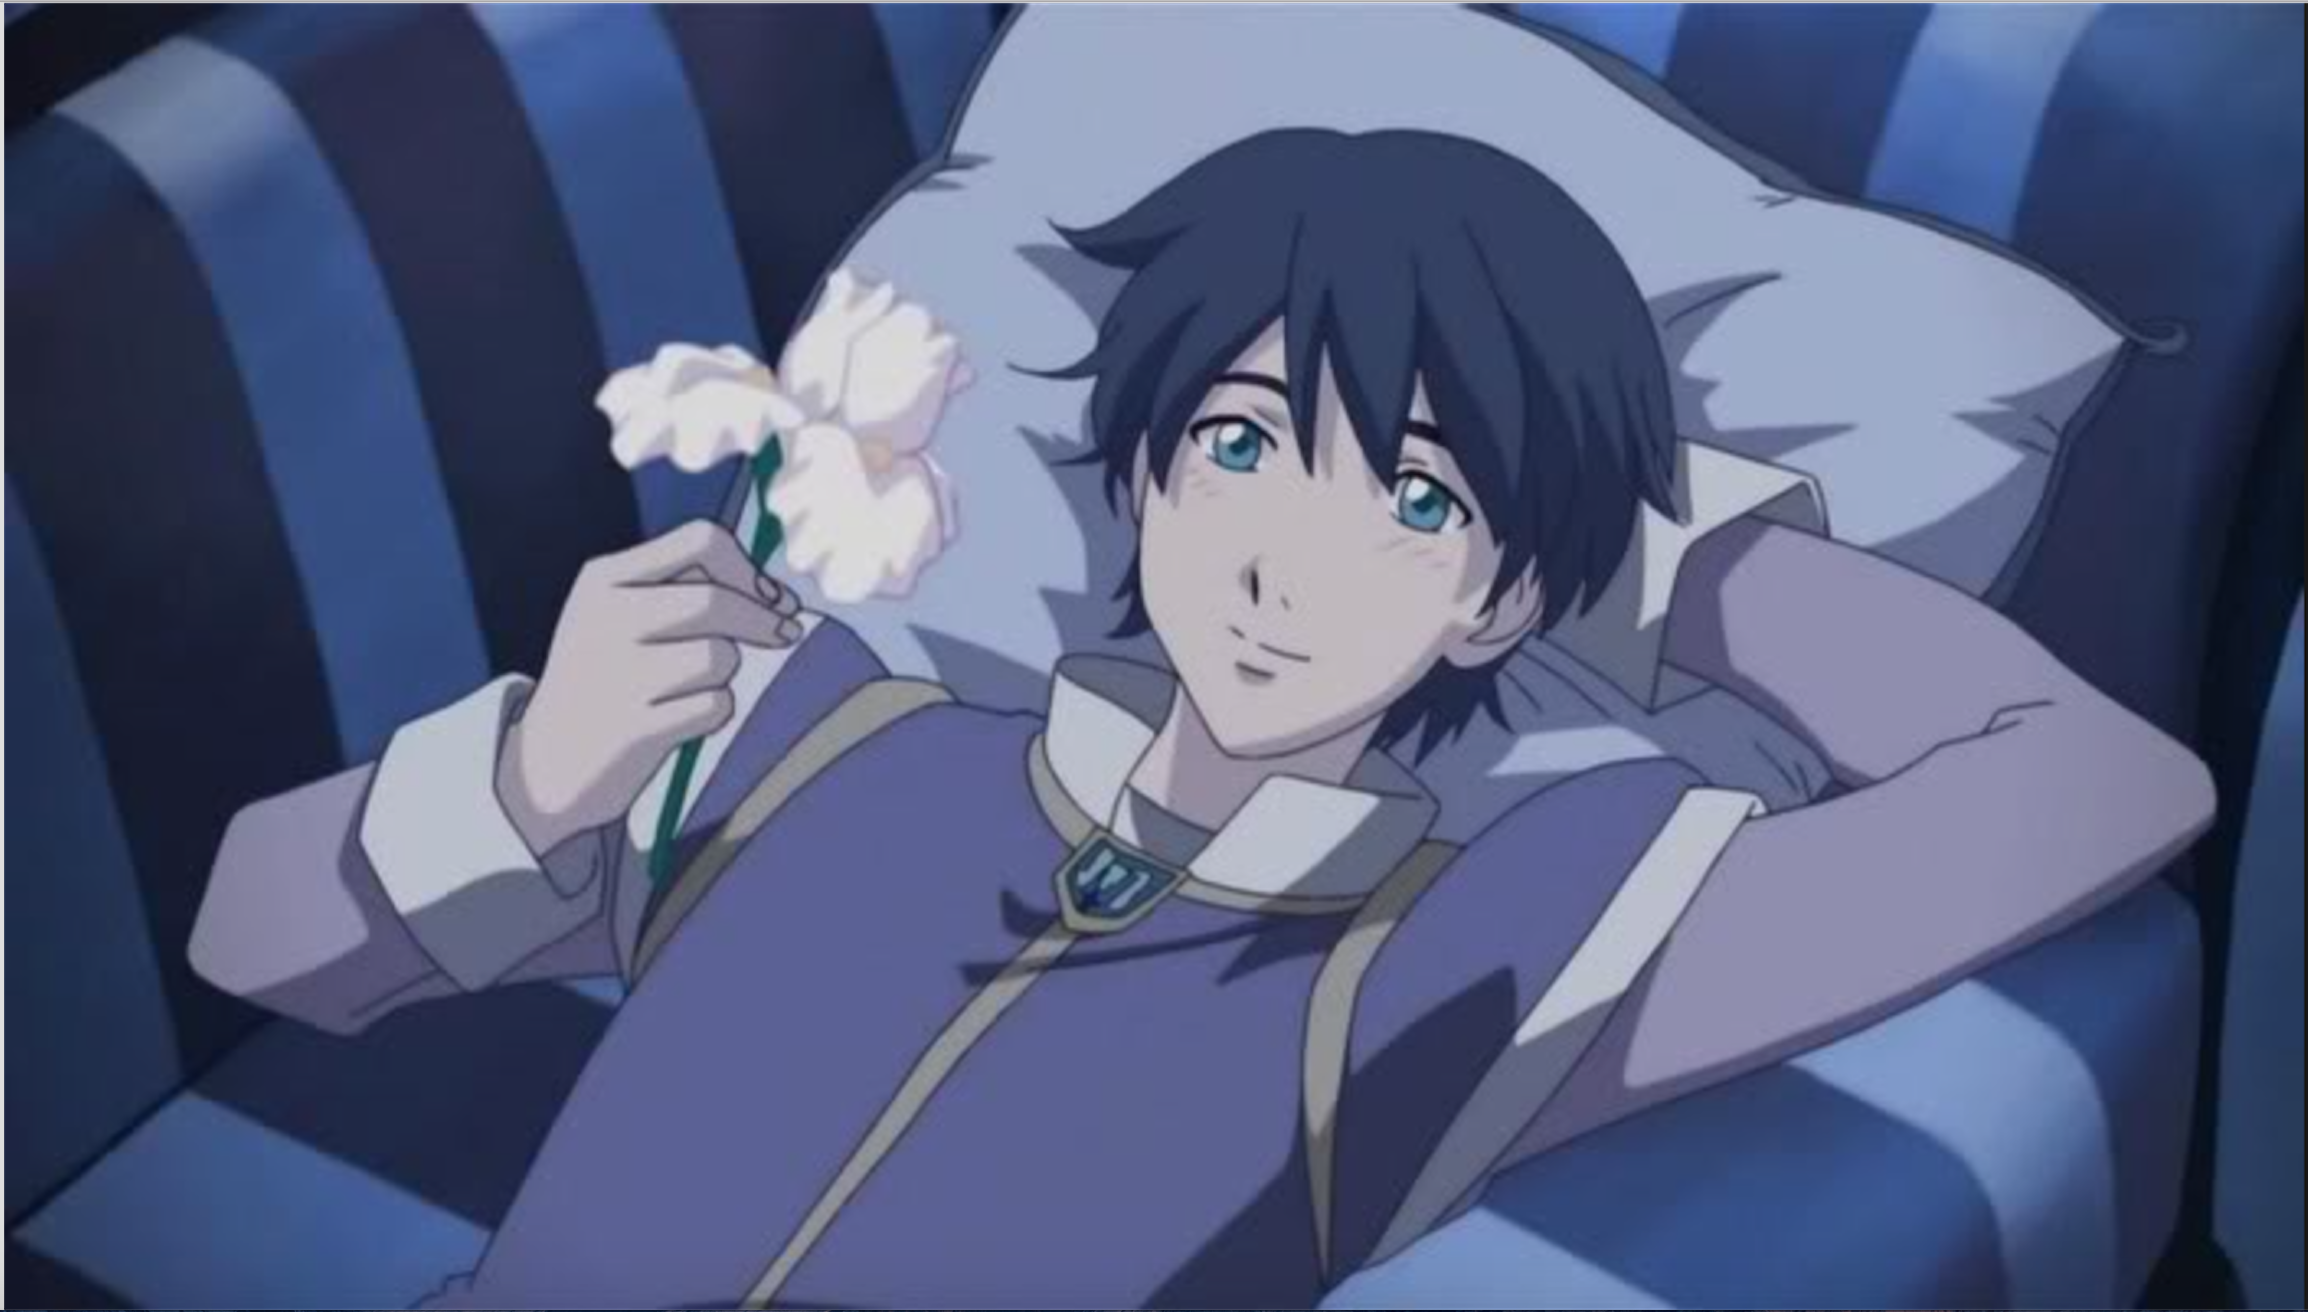 Romeo daydreams of juliet as he holds the iris flower from romeo x romeo daydreams of juliet as he holds the iris flower from romeo x juliet anime izmirmasajfo